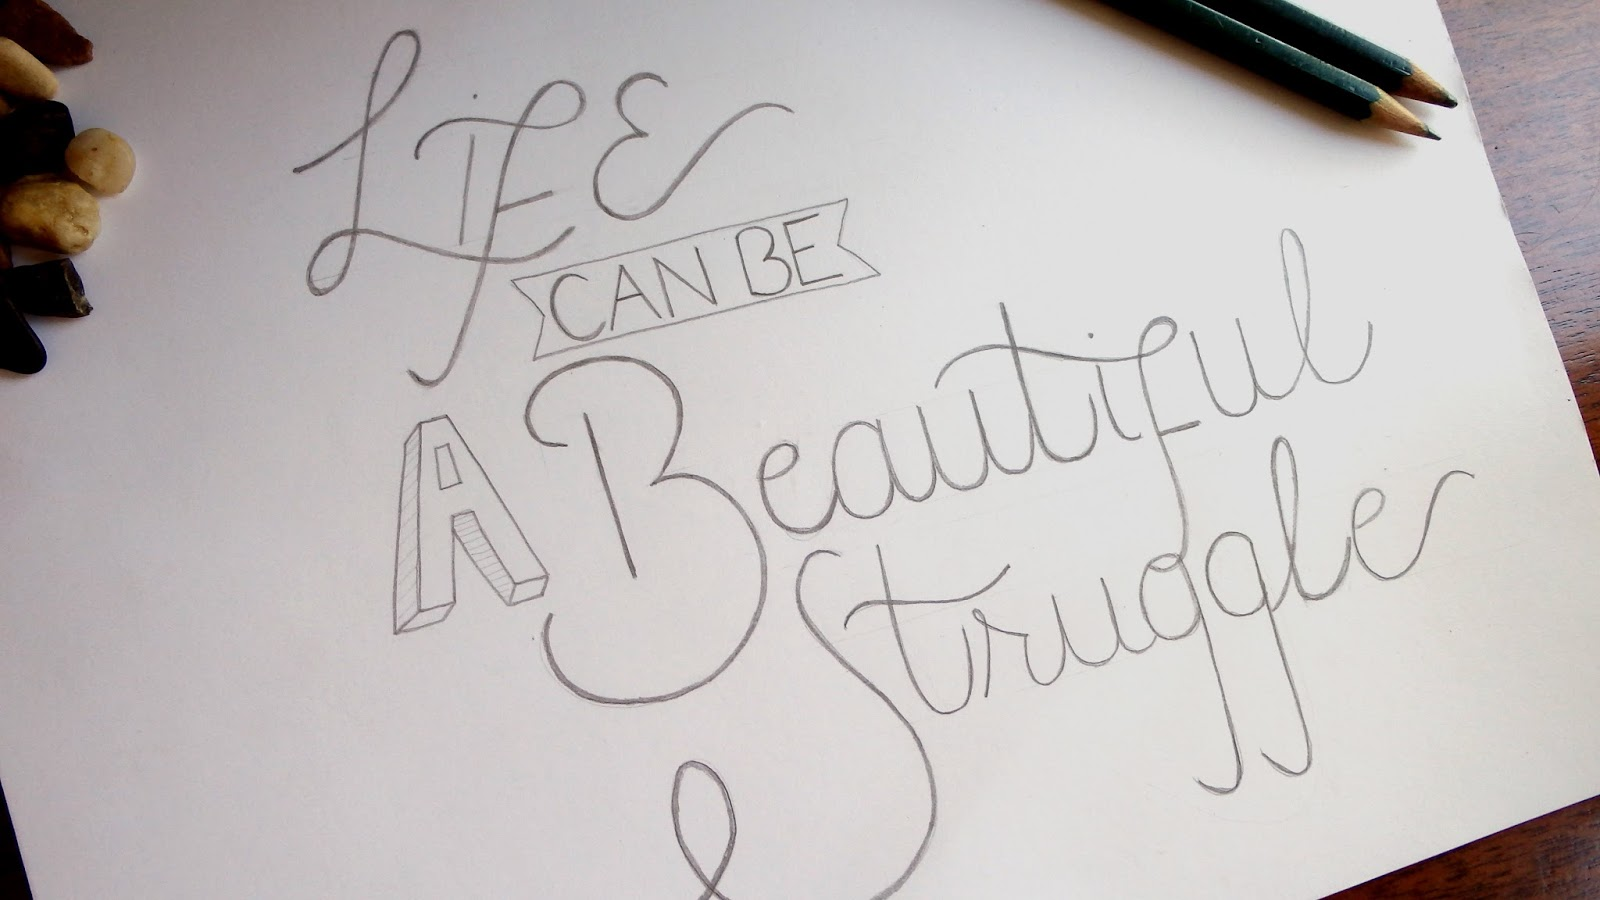 Life can be a beautiful struggle